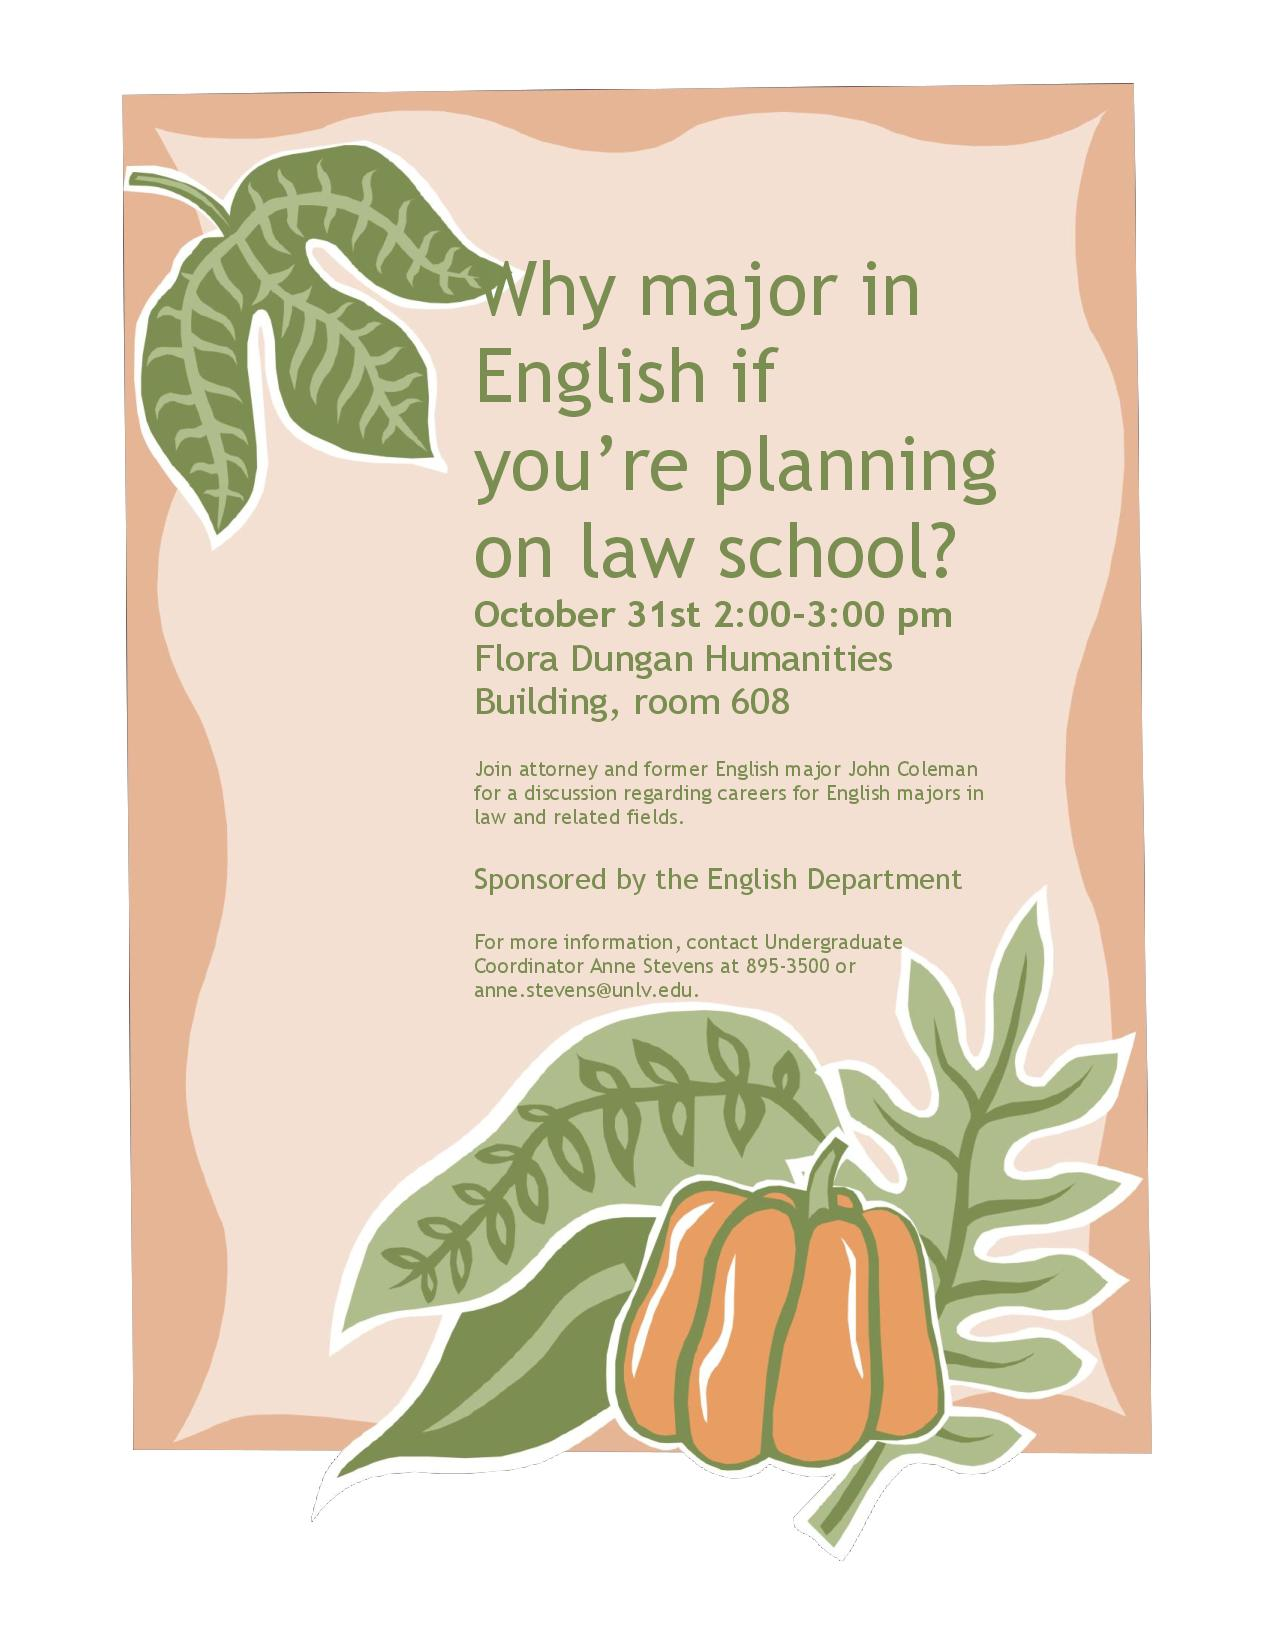 Pre-law event for English majors